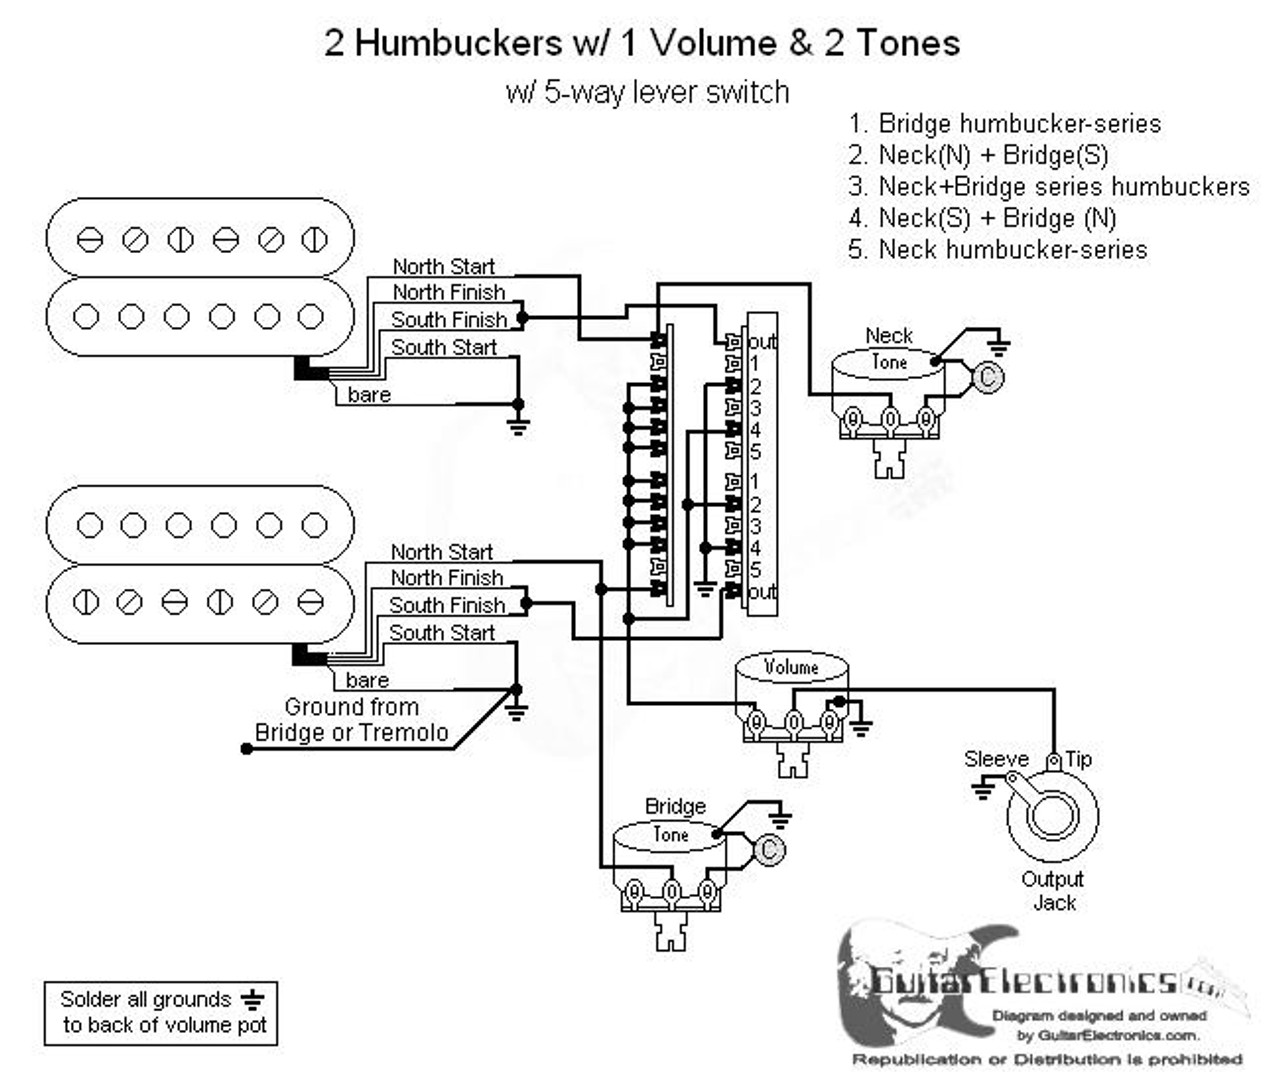 hight resolution of 2 humbuckers 5 way lever switch 1 volume 2 tones 05 2 volume 1 tone 5 way switch wiring diagram